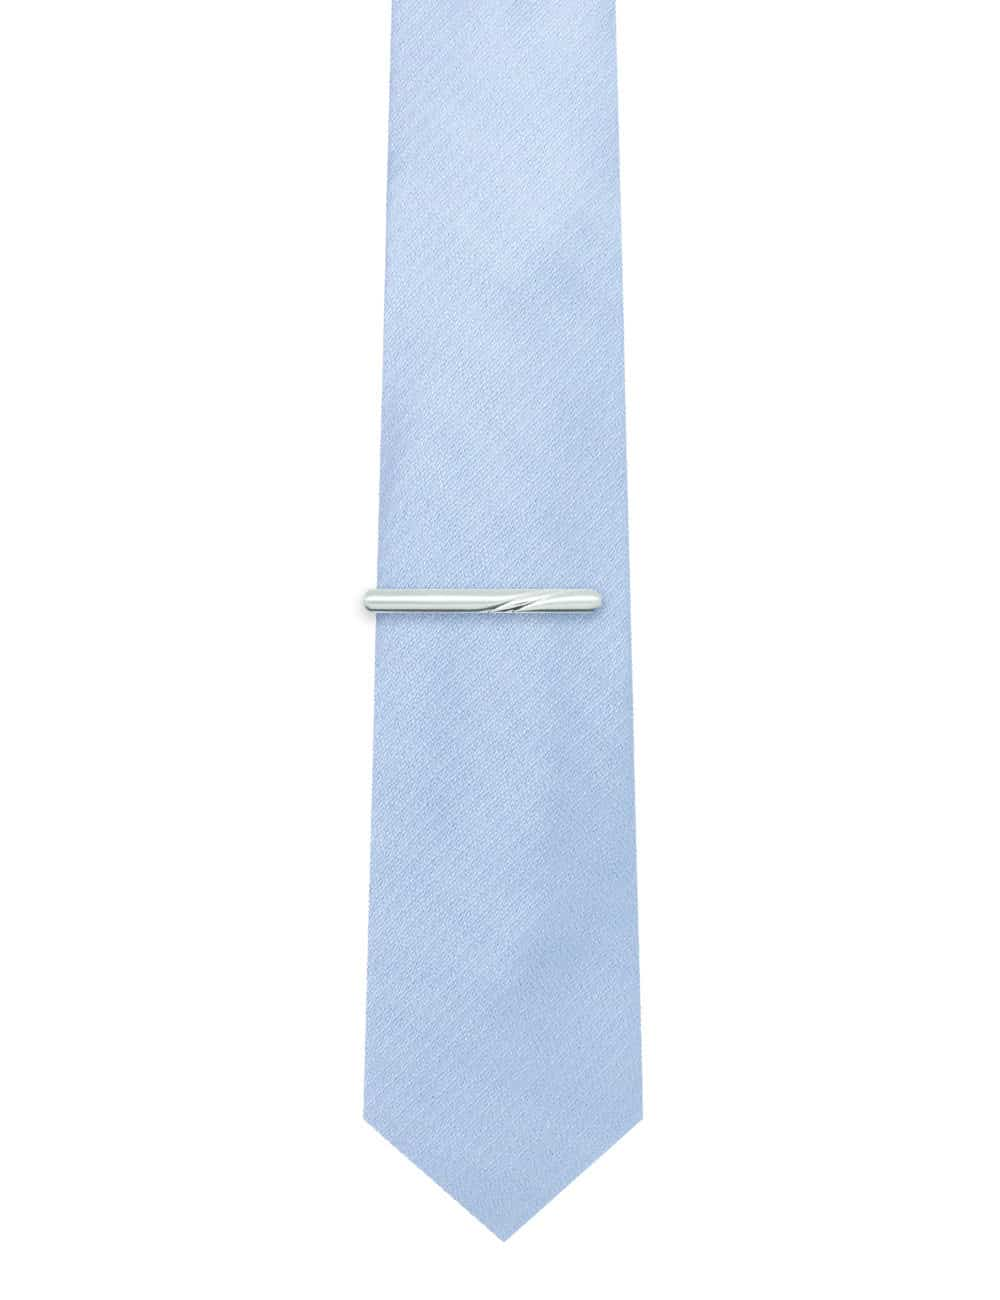 Silver Brushed with Double Slashed Centre Tie Clip T101FC-024